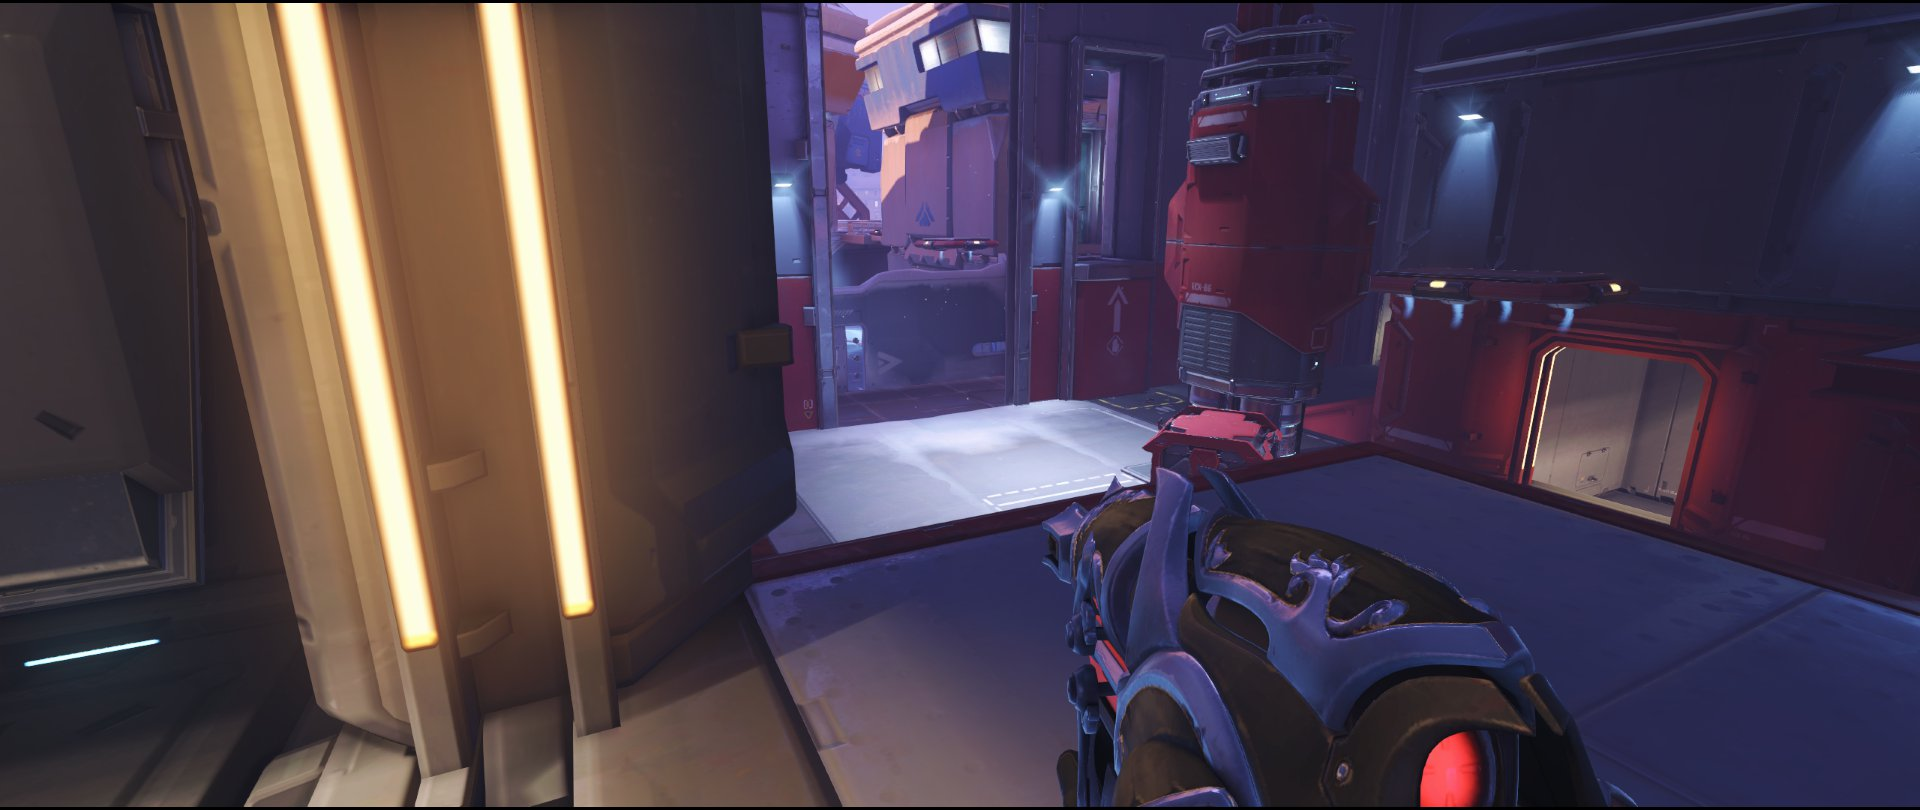 Closet defense sniping spot Widowmaker Volskaya Industries Overwatch.jpg